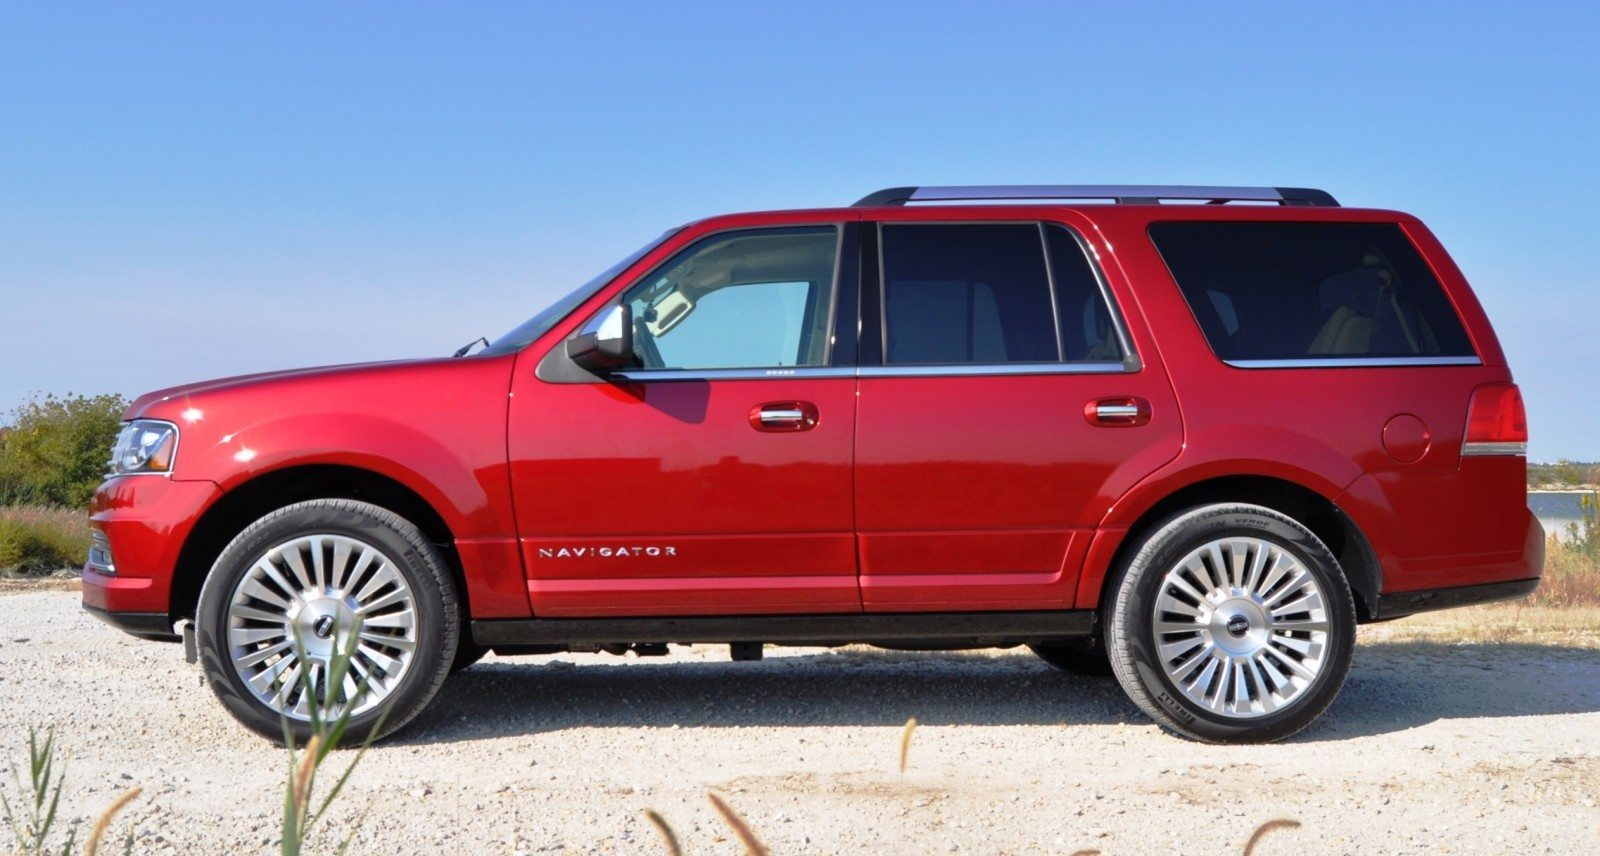 Road Test Review - 2015 Lincoln Navigator Is Totally Transformed By MR Shocks and EcoBoost 4